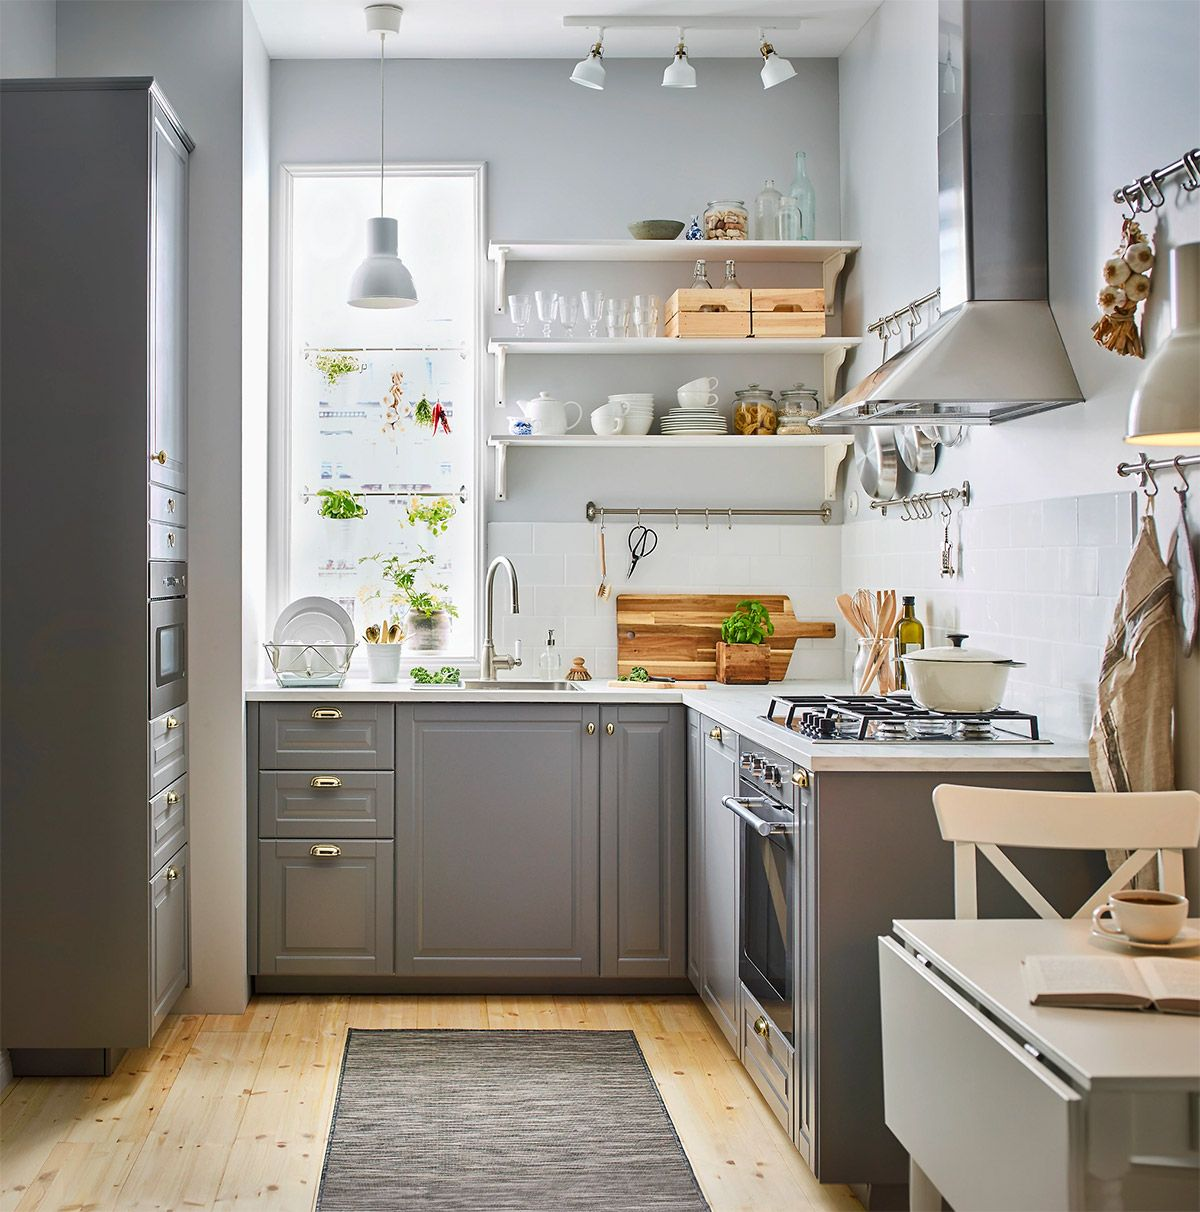 50 Splendid Small Kitchens And Ideas You Can Use From Them Tiny Kitchen Design Small Kitchen Design Layout Small Space Kitchen